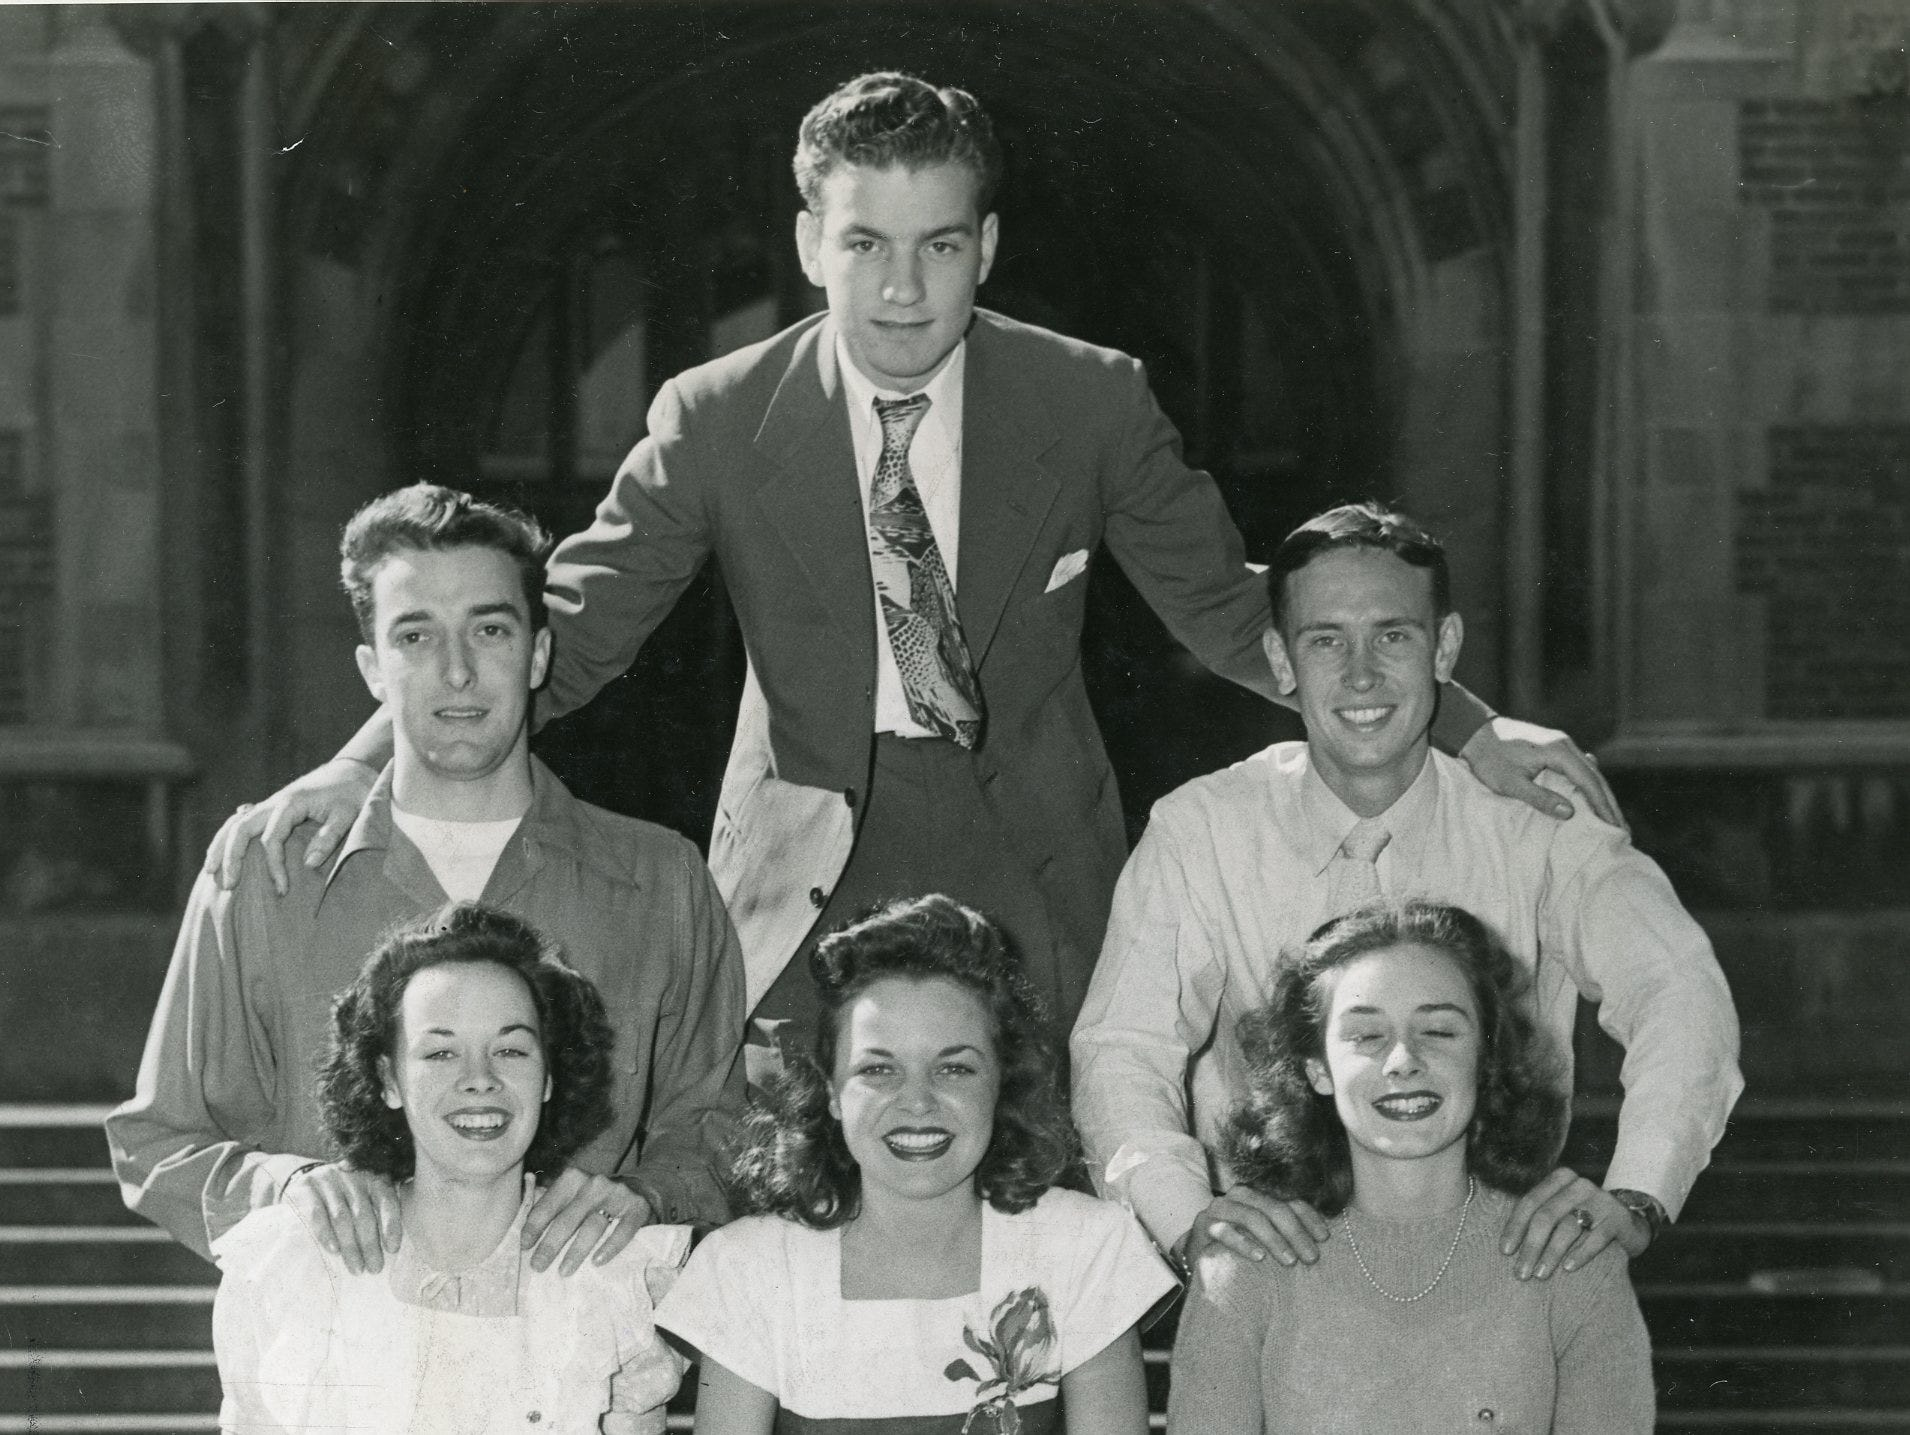 Tennessee's 1946 cheerleading squad members were (front) Johnny Sterchi; (second row) Mary Elizabeth (Sis) McColloch, Loretta Harrison, Mary Lee Ewell; (back) Tandy Wilson, Charlie Wolfenbarger and Thomas Edward (Bucky) Cantrell.